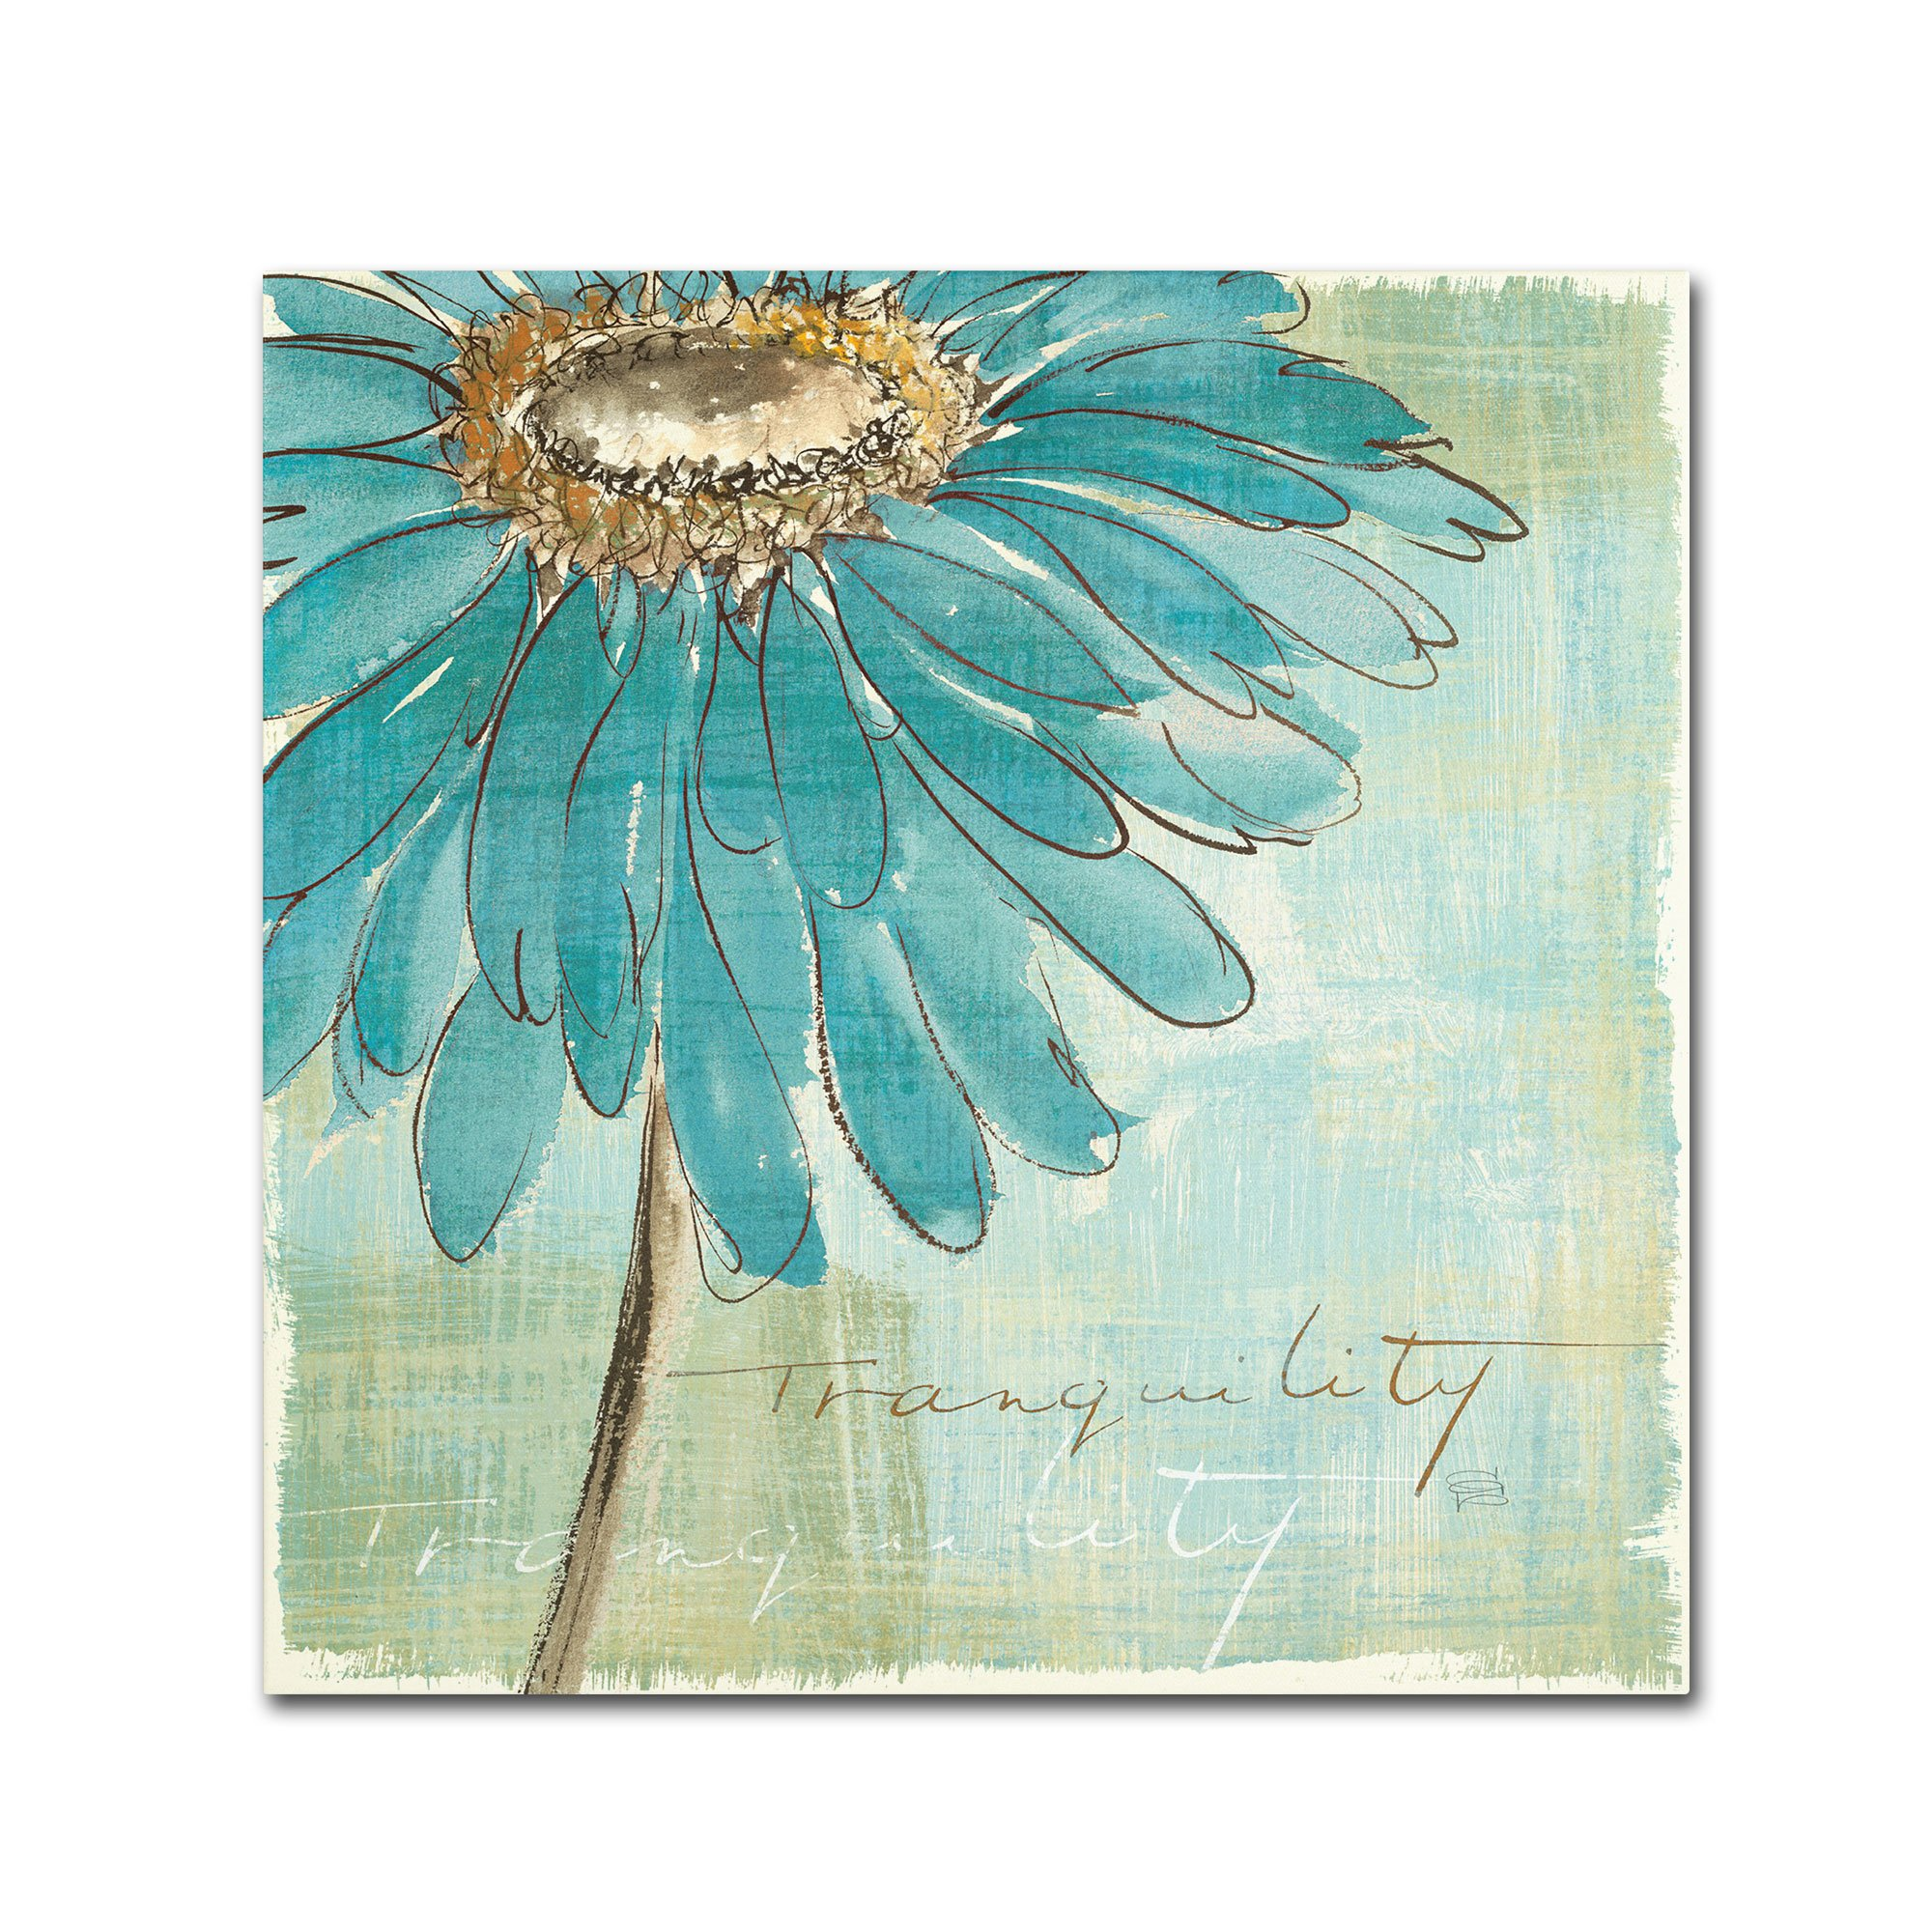 Trademark Fine Art Spa Daisies III by Chris Paschke Wall Decor, 24 by 24-Inch Canvas Wall Art